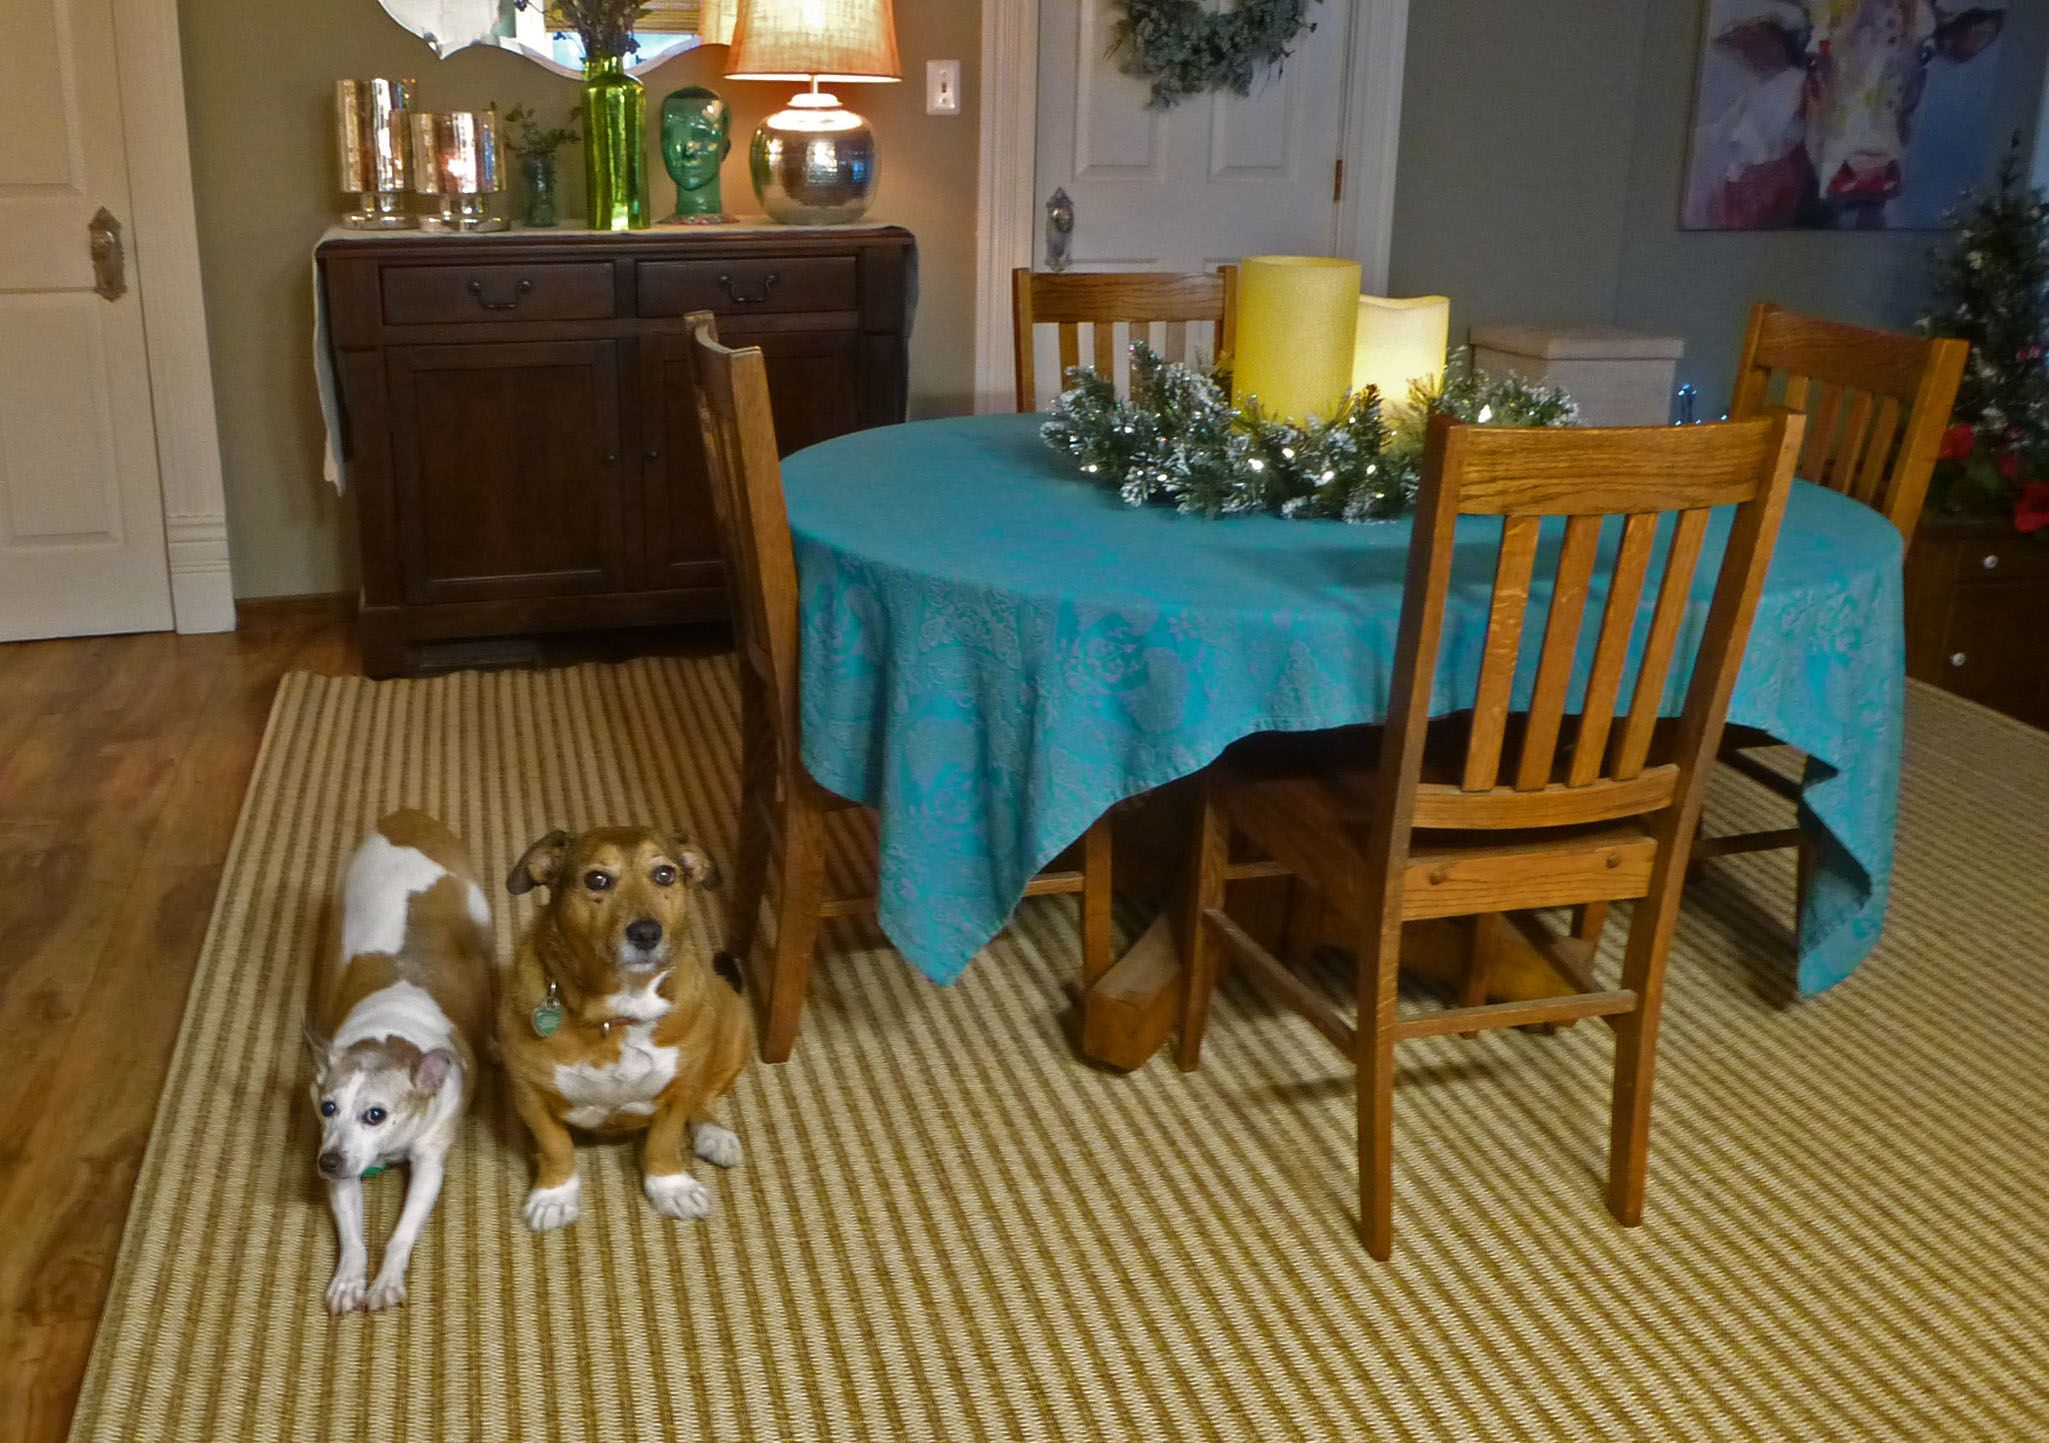 Missy and Poppy on their new Smith and Hawken rug from Target.   http://www.target.com/p/patio-rug-hickory-stripe-smith-hawken/-/A-50785590